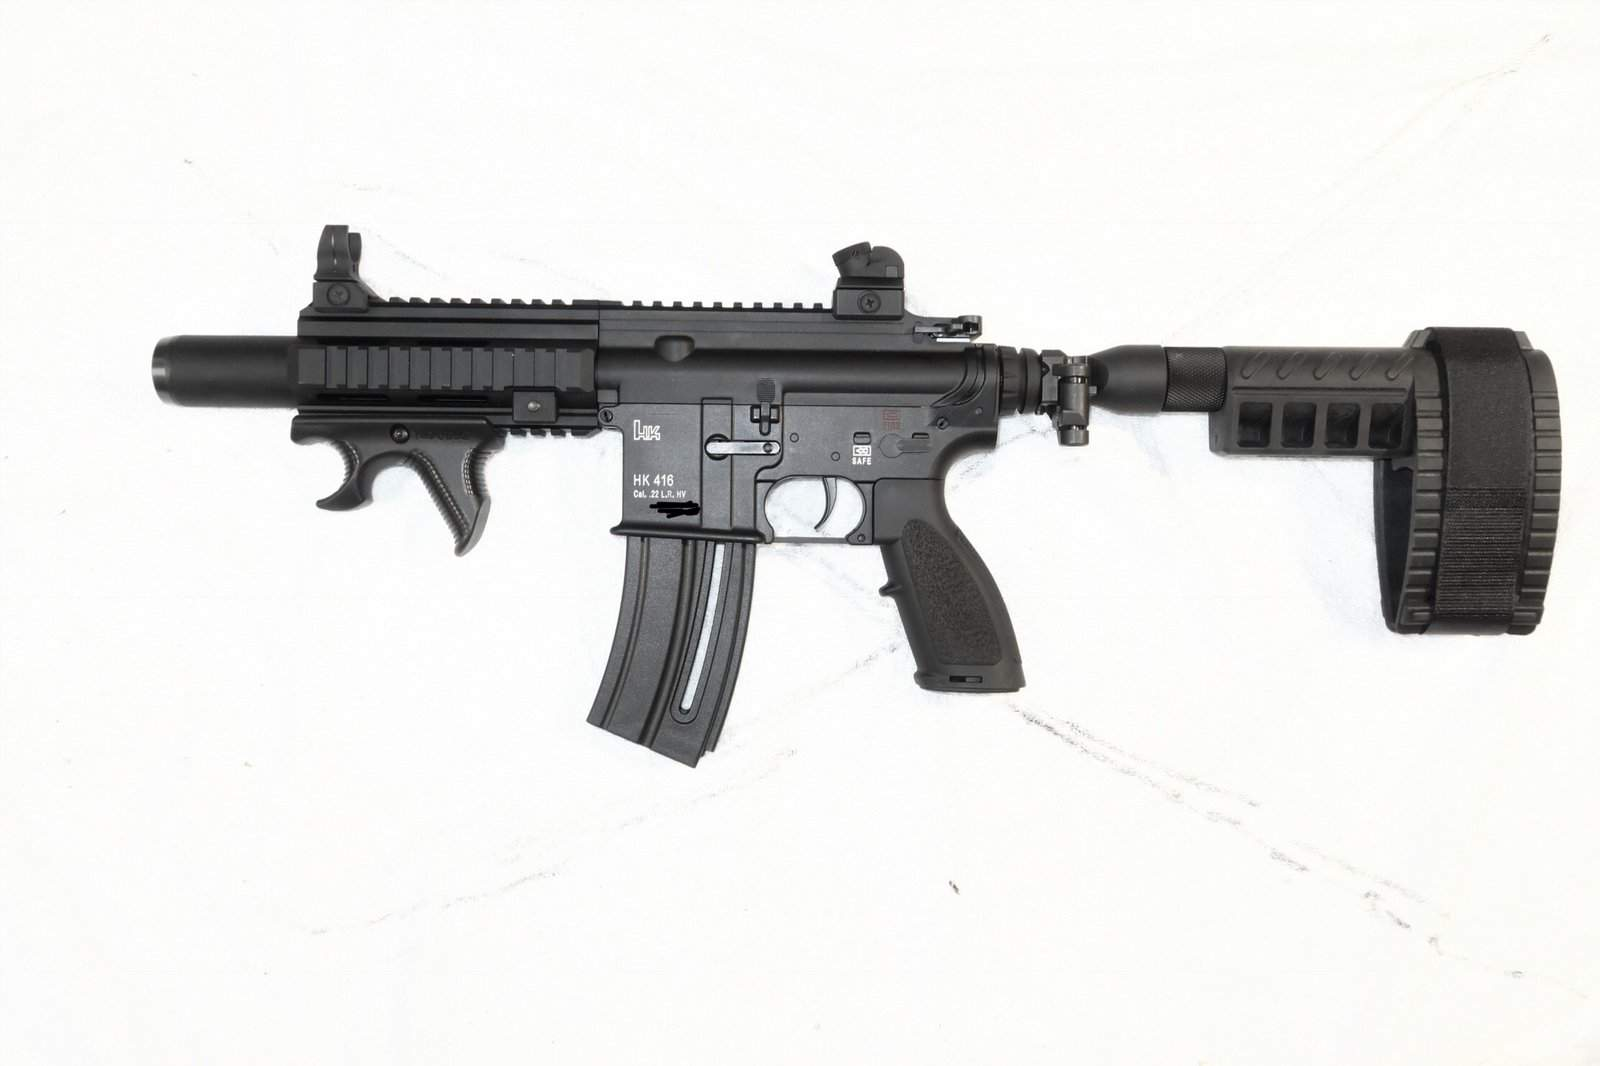 HK416 Pistol in 22LR Questions | Northwest Firearms - Oregon